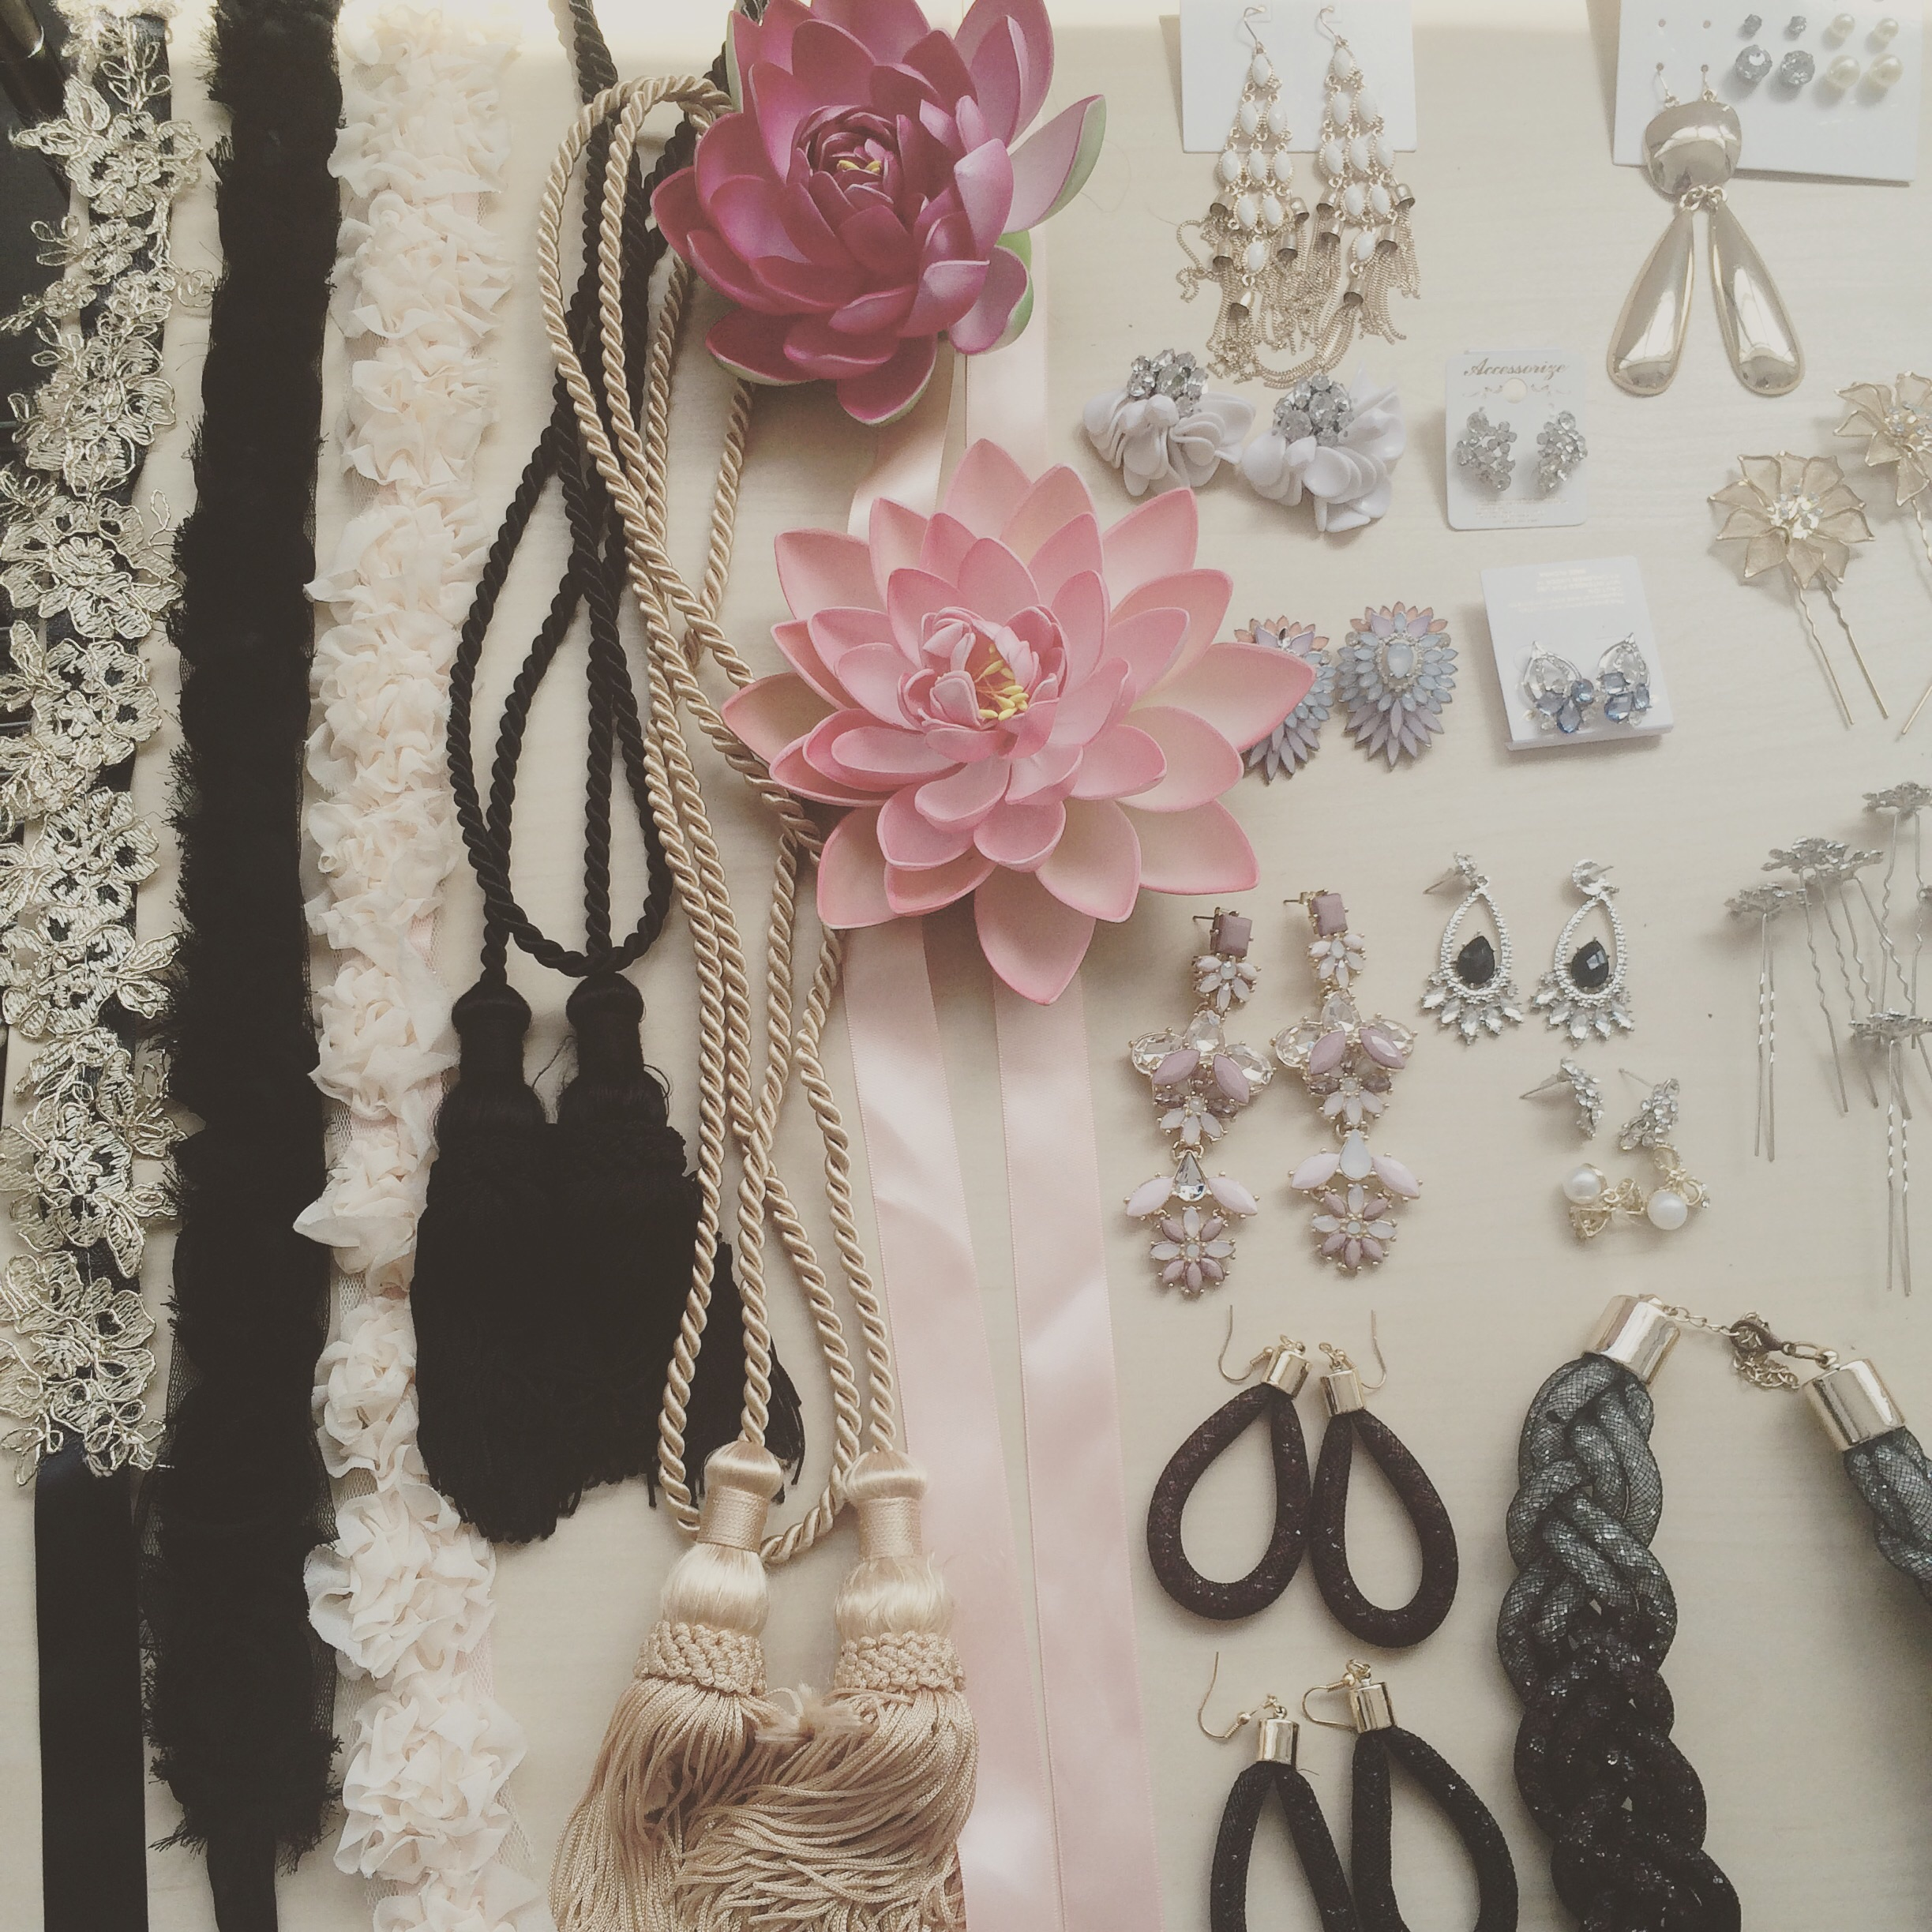 The accessories. Floral headbands are hand crafted by me!